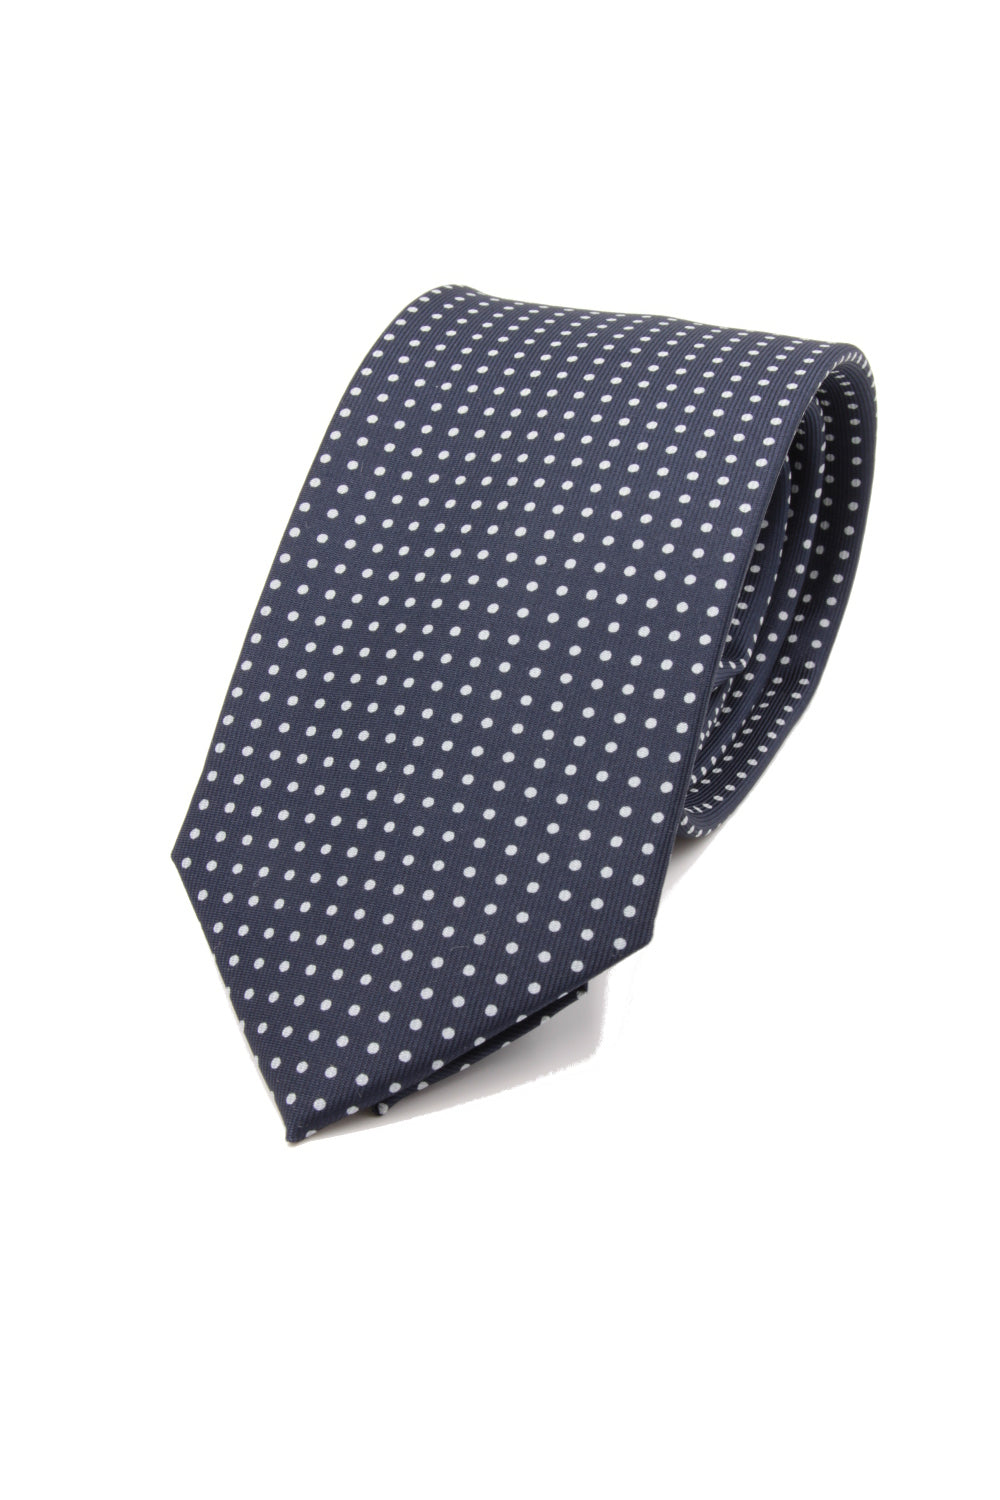 drake's Navy blue white dots tie